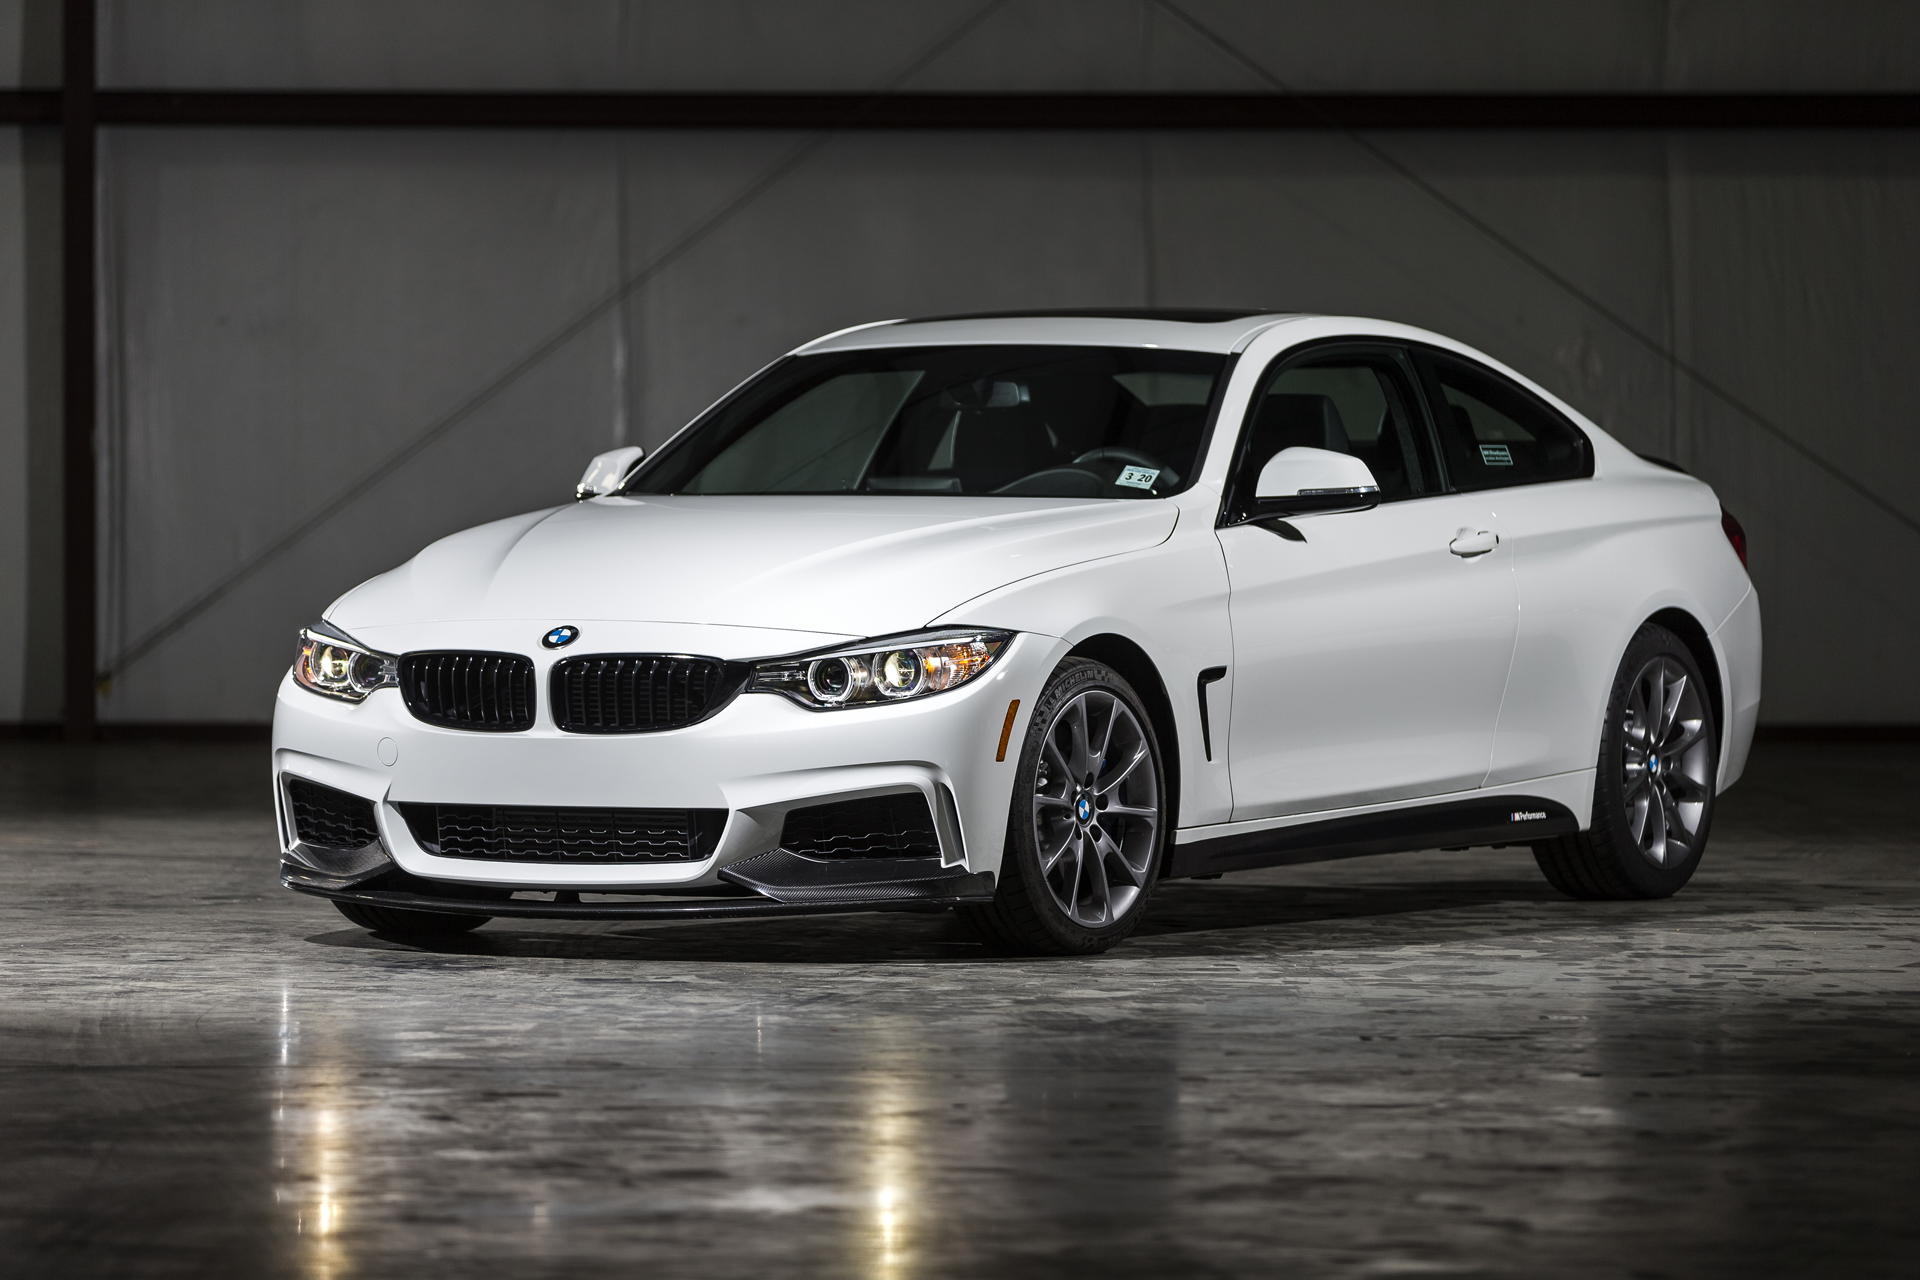 BMW releasing a Limited-Run 435i ZHP edition with extra beans loaded